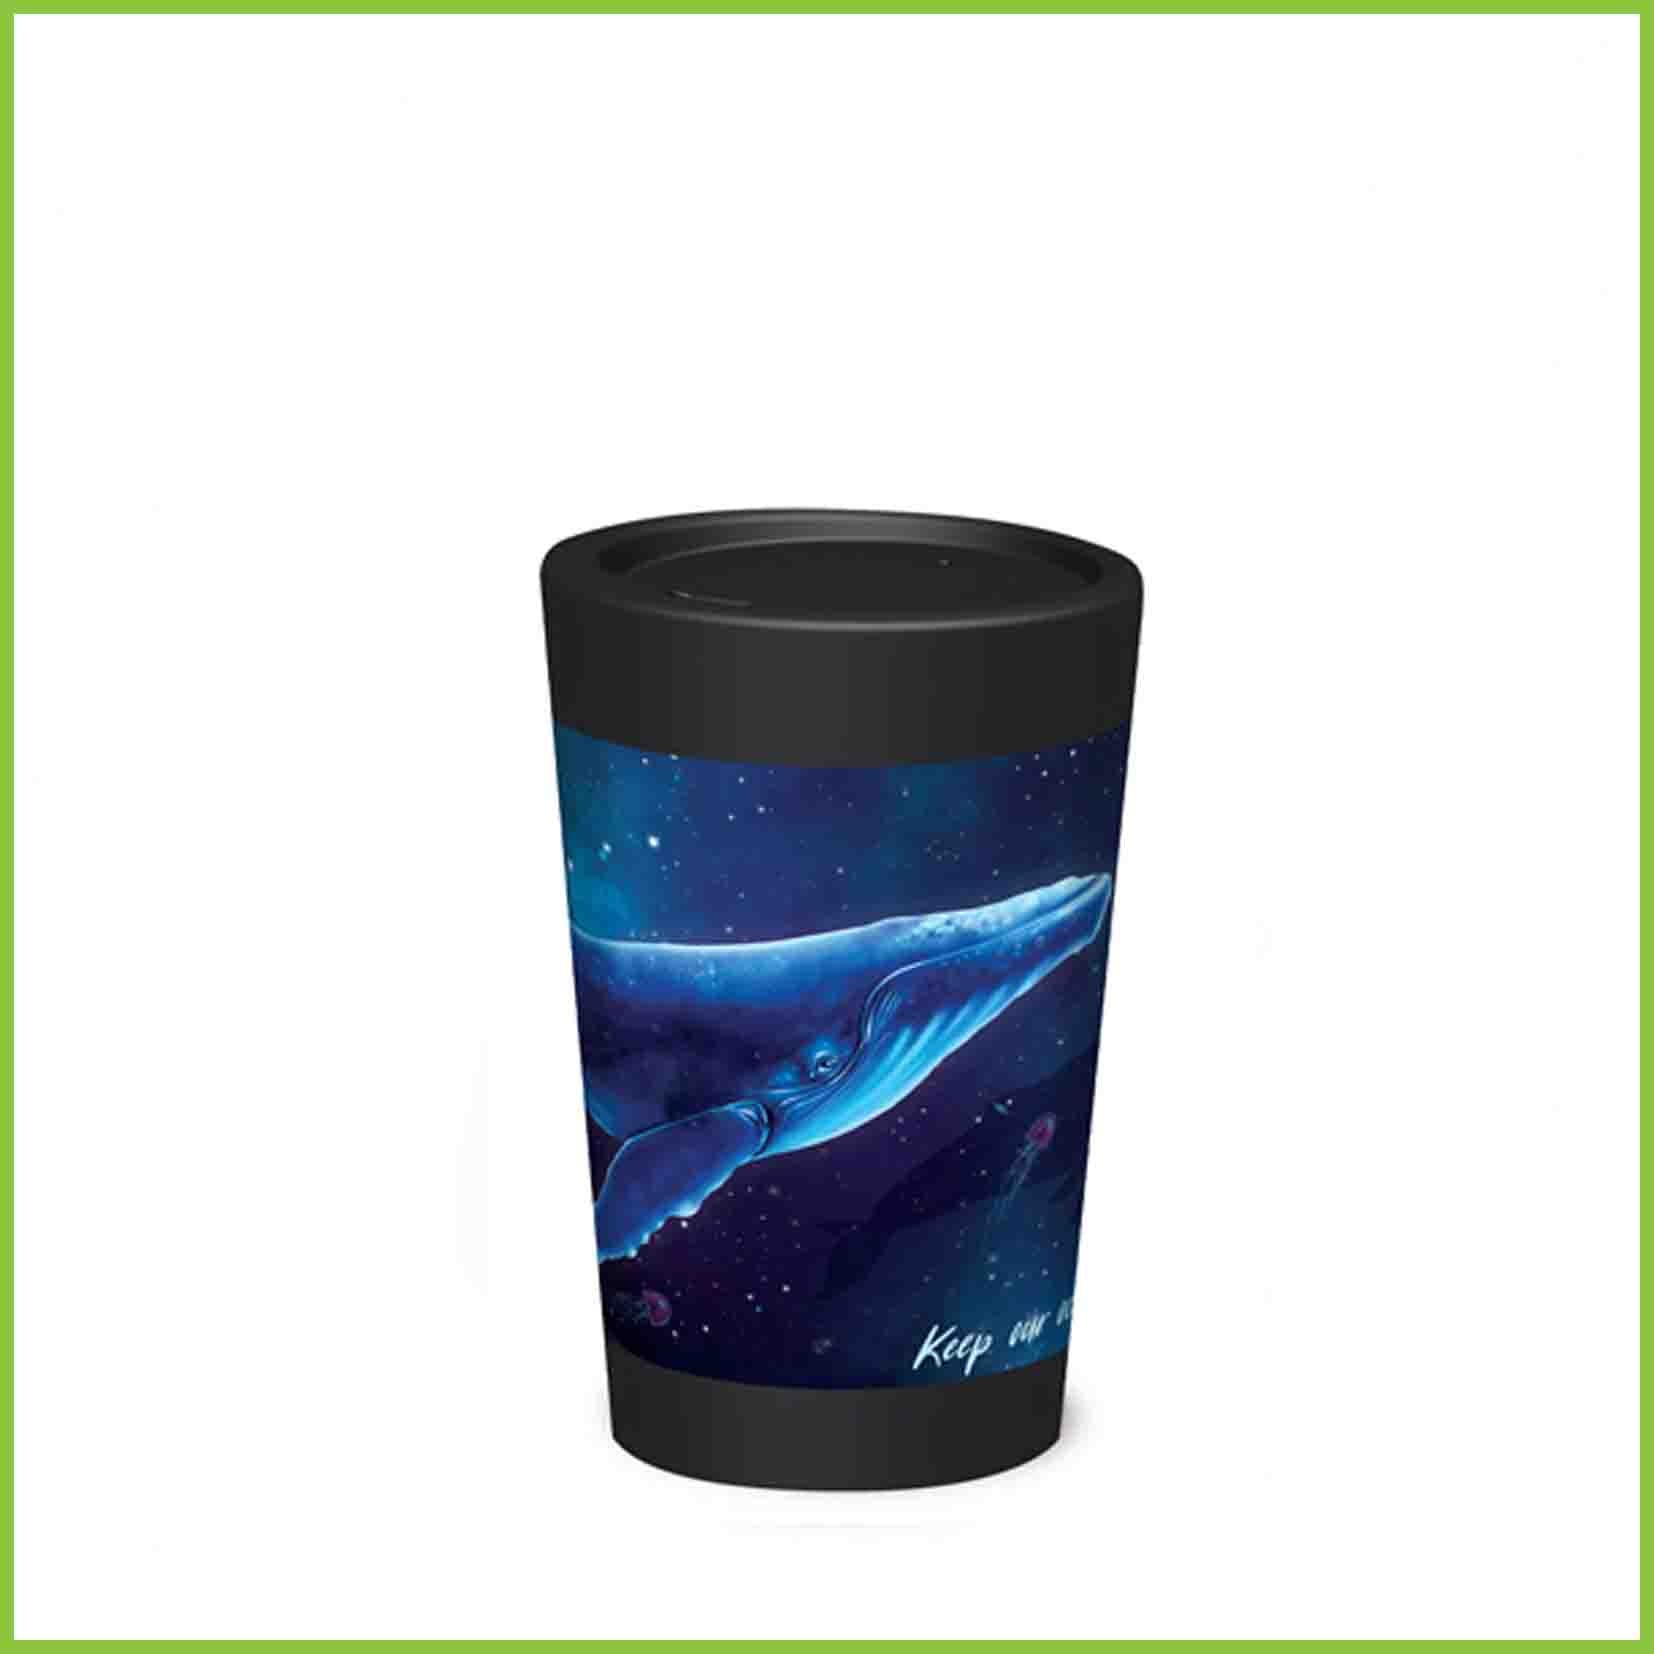 A lightweight reusable cup from CuppaCoffeeCup with a Humpback Whale design.